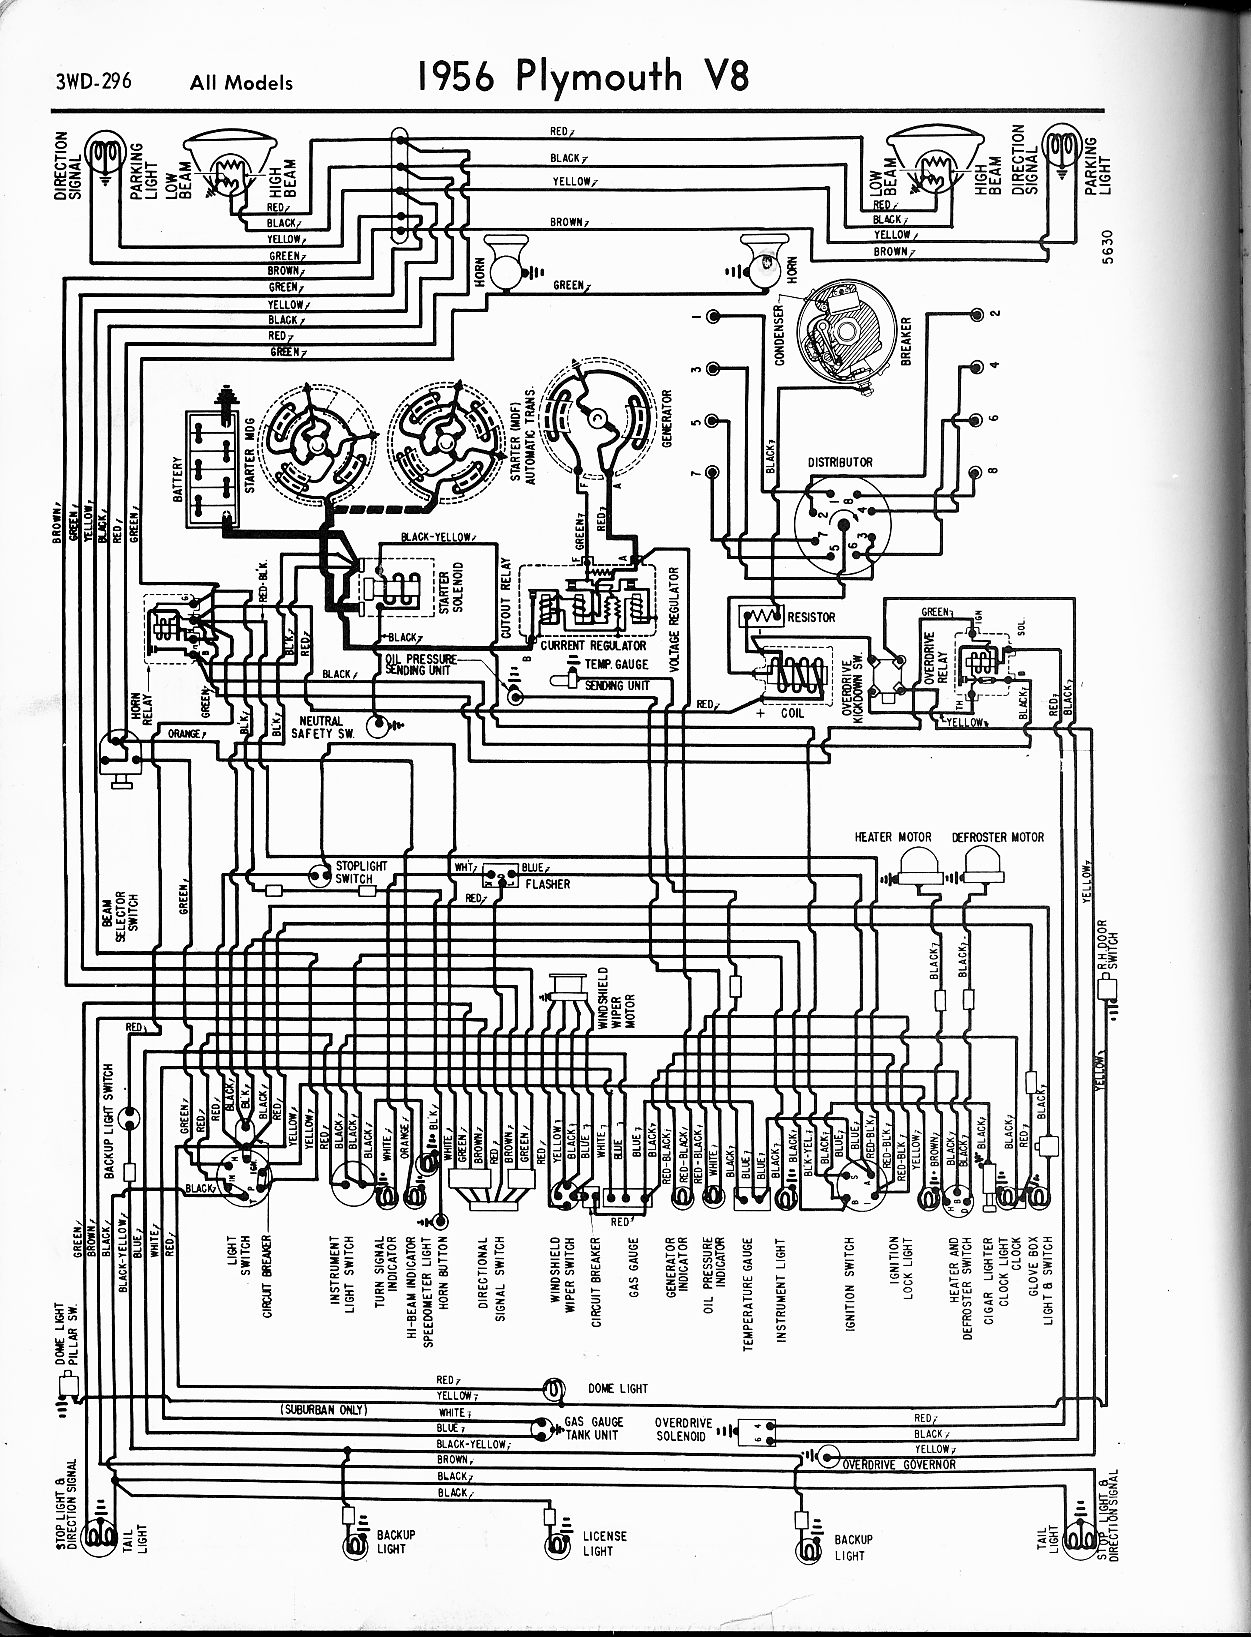 Srop O B Lincoln Continental Mark Ii Bleft Side furthermore Chevy Fuse Box Diagram besides Darta together with Mercury Wiring Diagram besides . on 1956 ford car wiring diagram